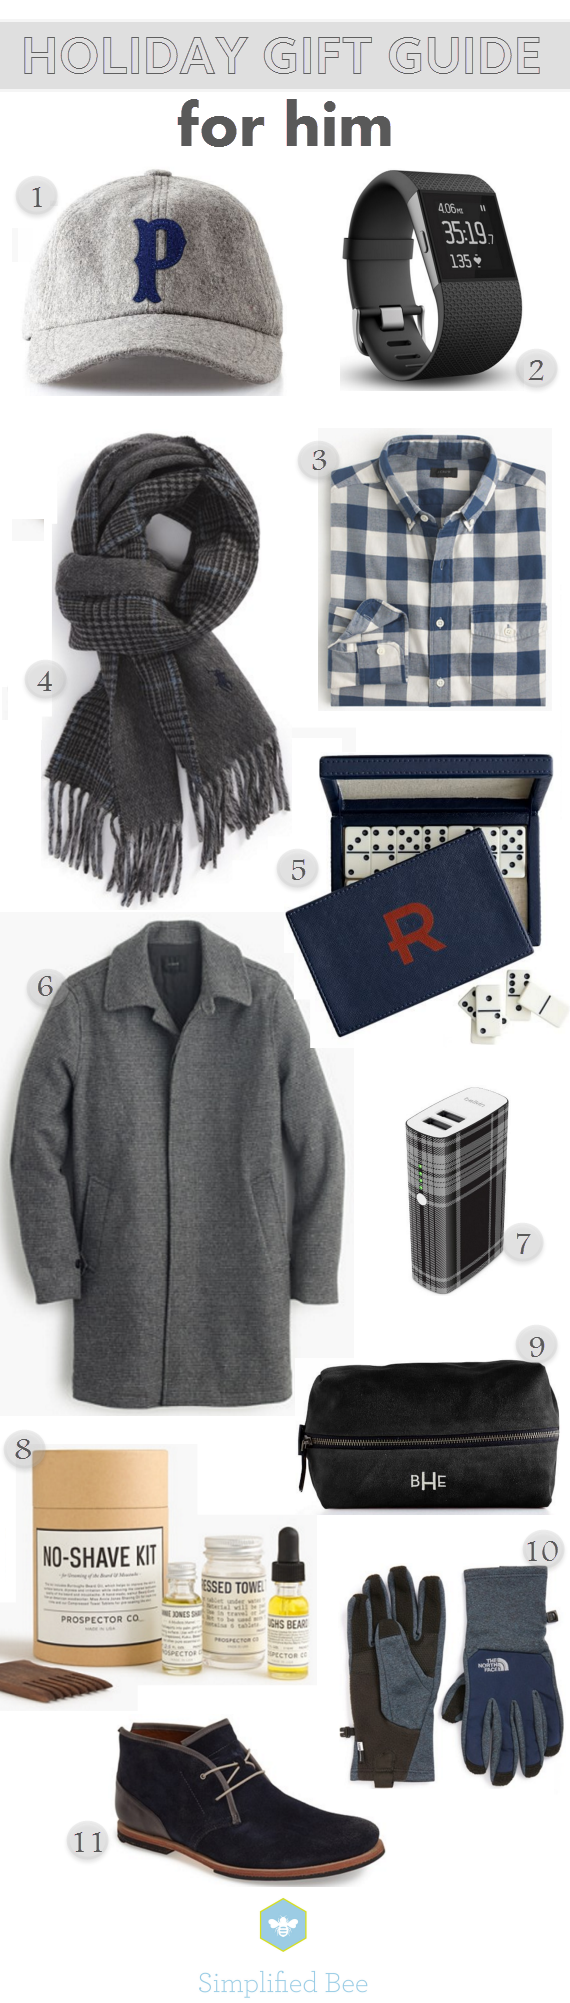 holiday gift guide 2015 // for him // via @simplifiedbee #holiday #giftguide